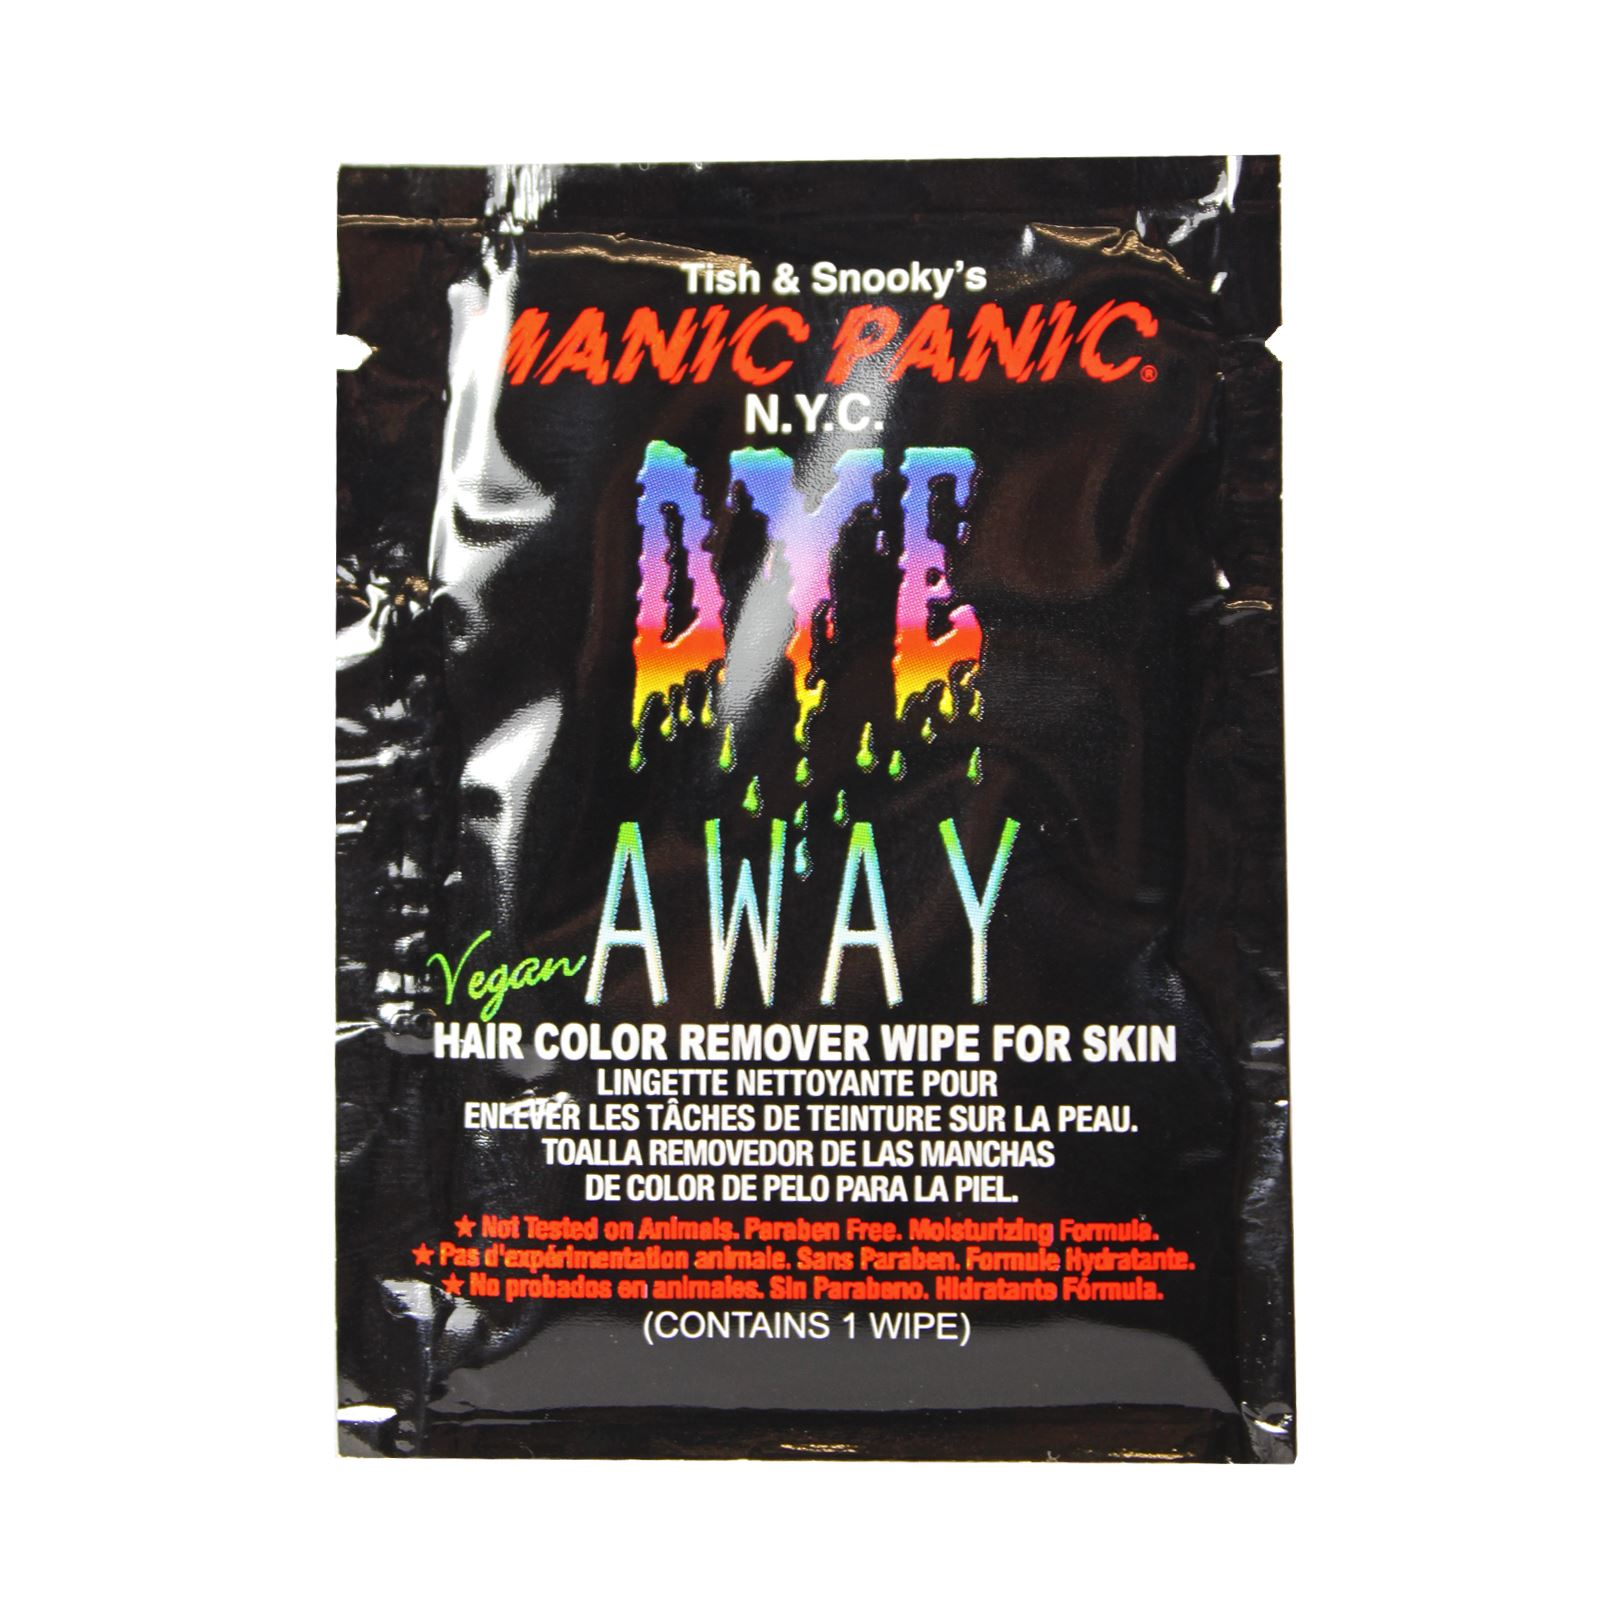 Manic Panic Hair Dye Remover Wipe Remove Hair Colour From Skin Ebay